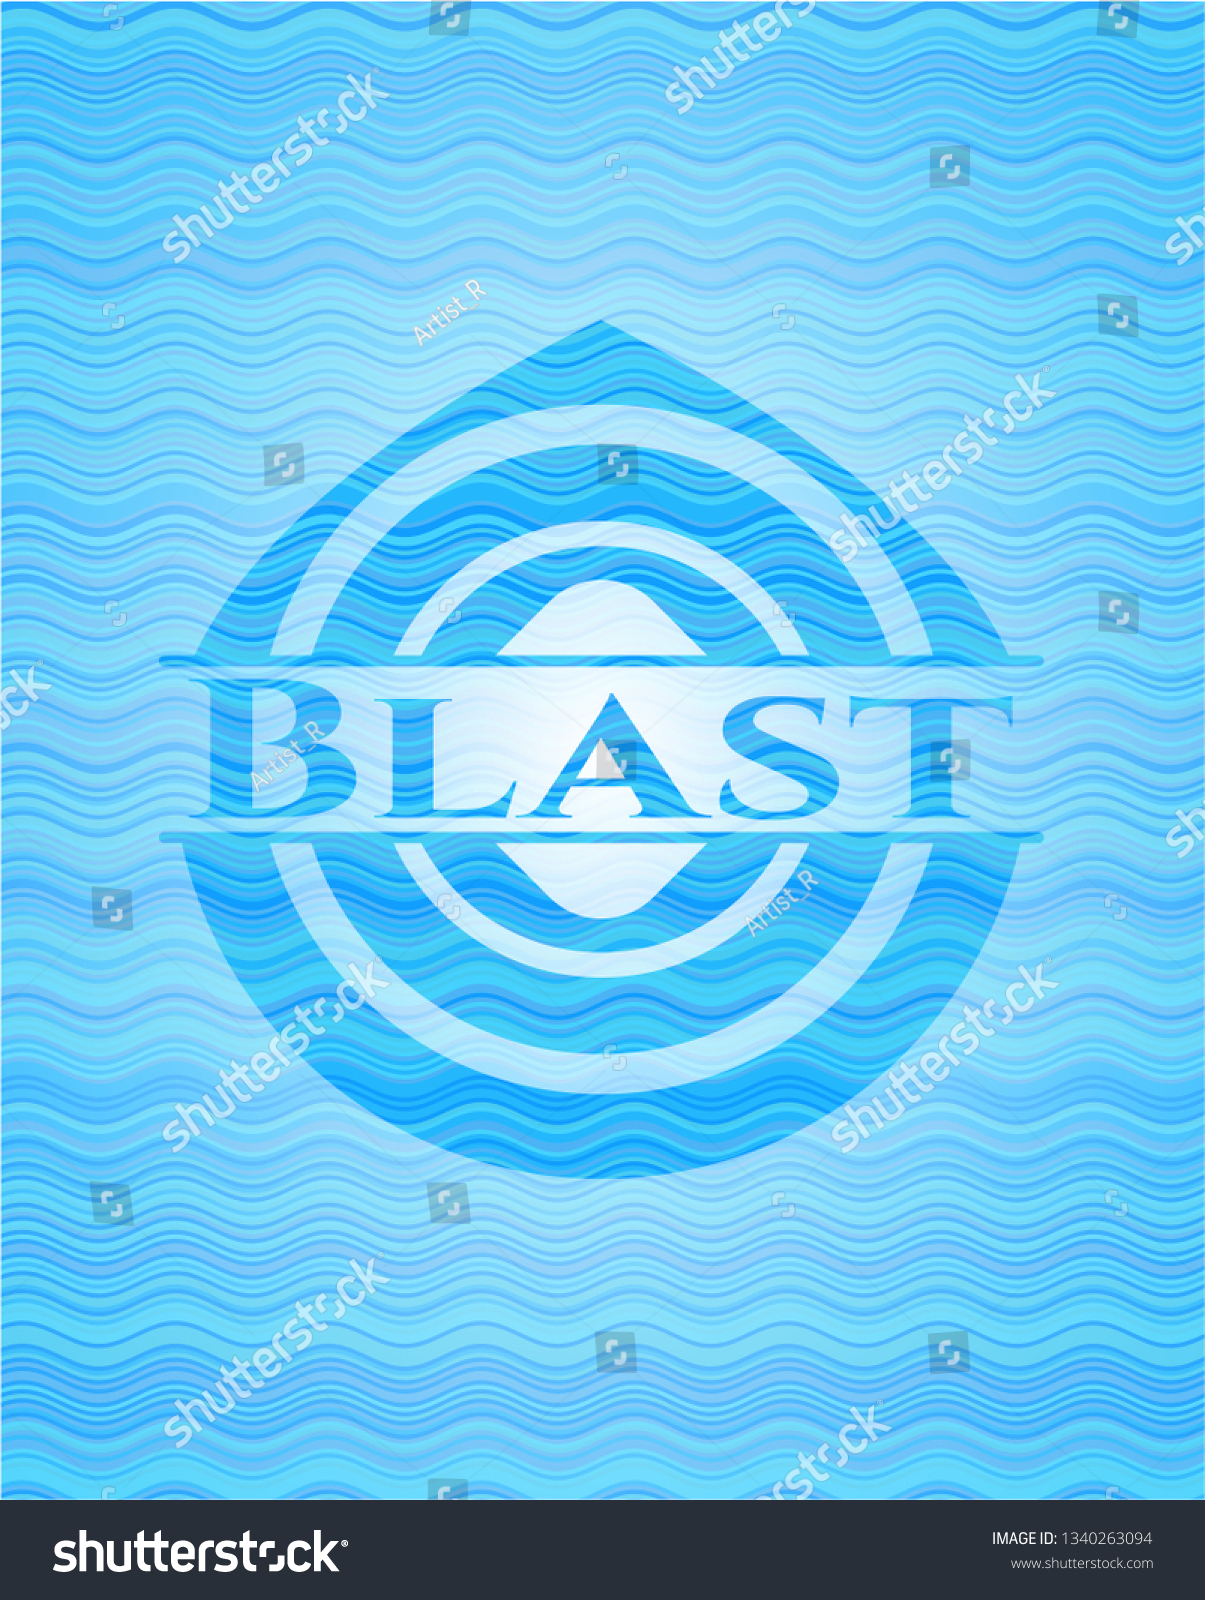 blast water representation emblem background stock vector royalty free 1340263094 shutterstock